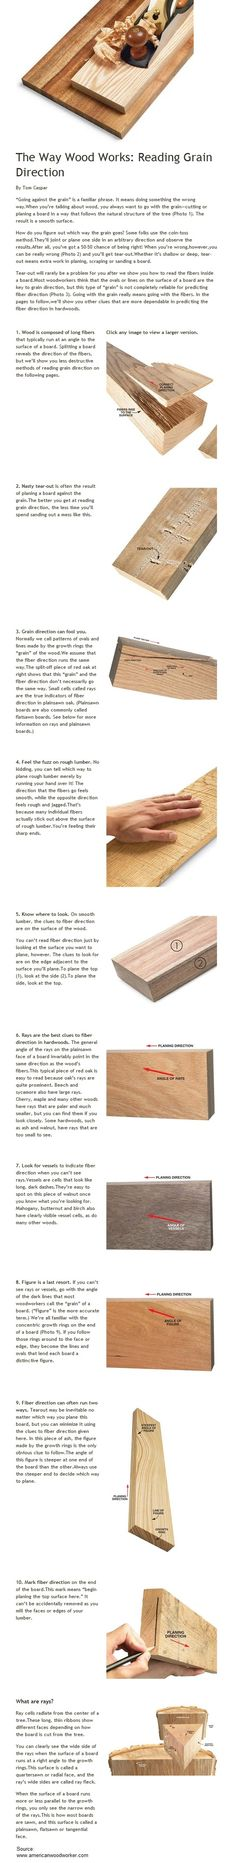 The Way Wood Works.. Reading Grain Direction